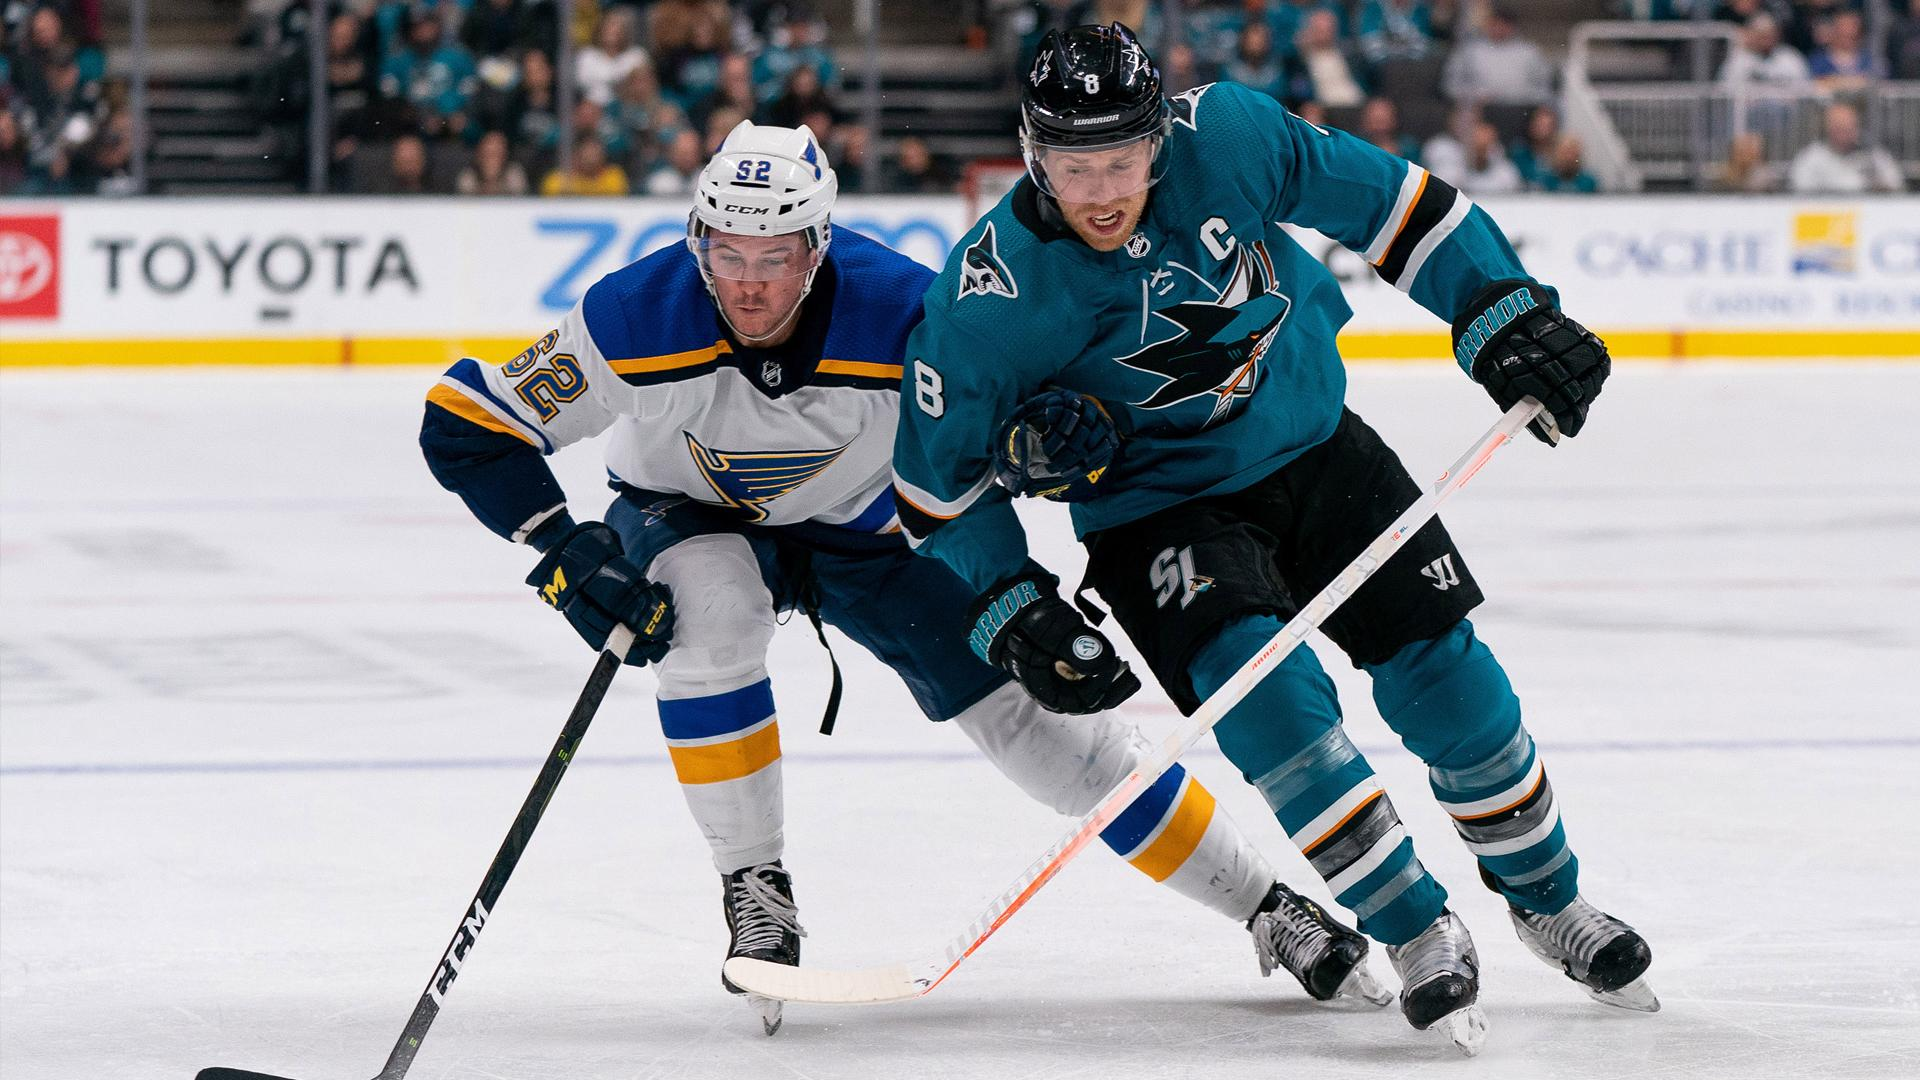 NHL playoff schedule 2019: Sharks vs. Blues dates, times ...